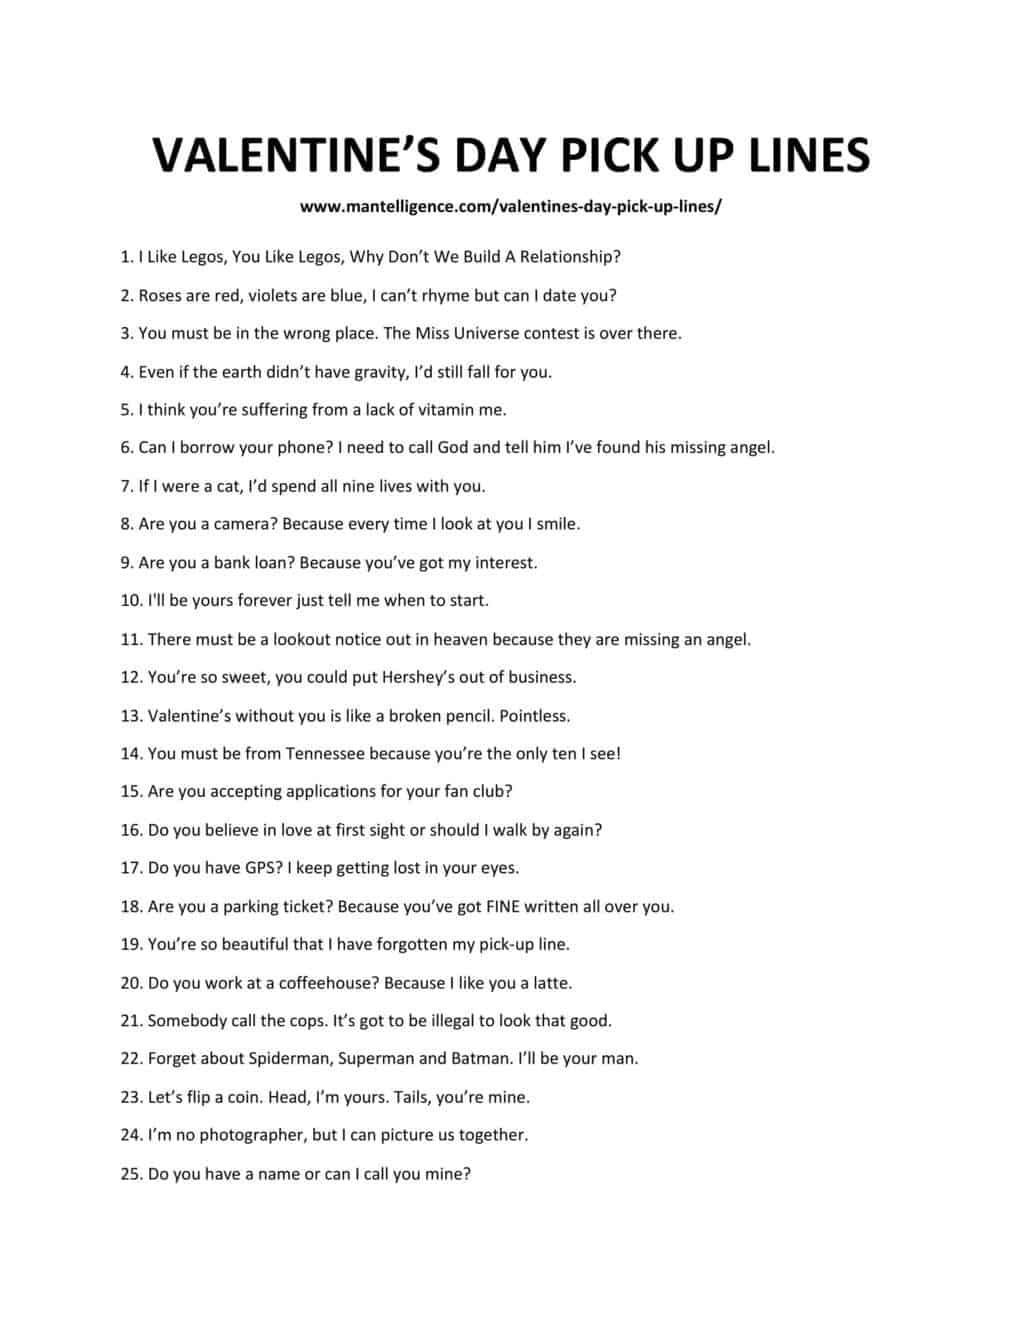 A downloadable list of pick up lines